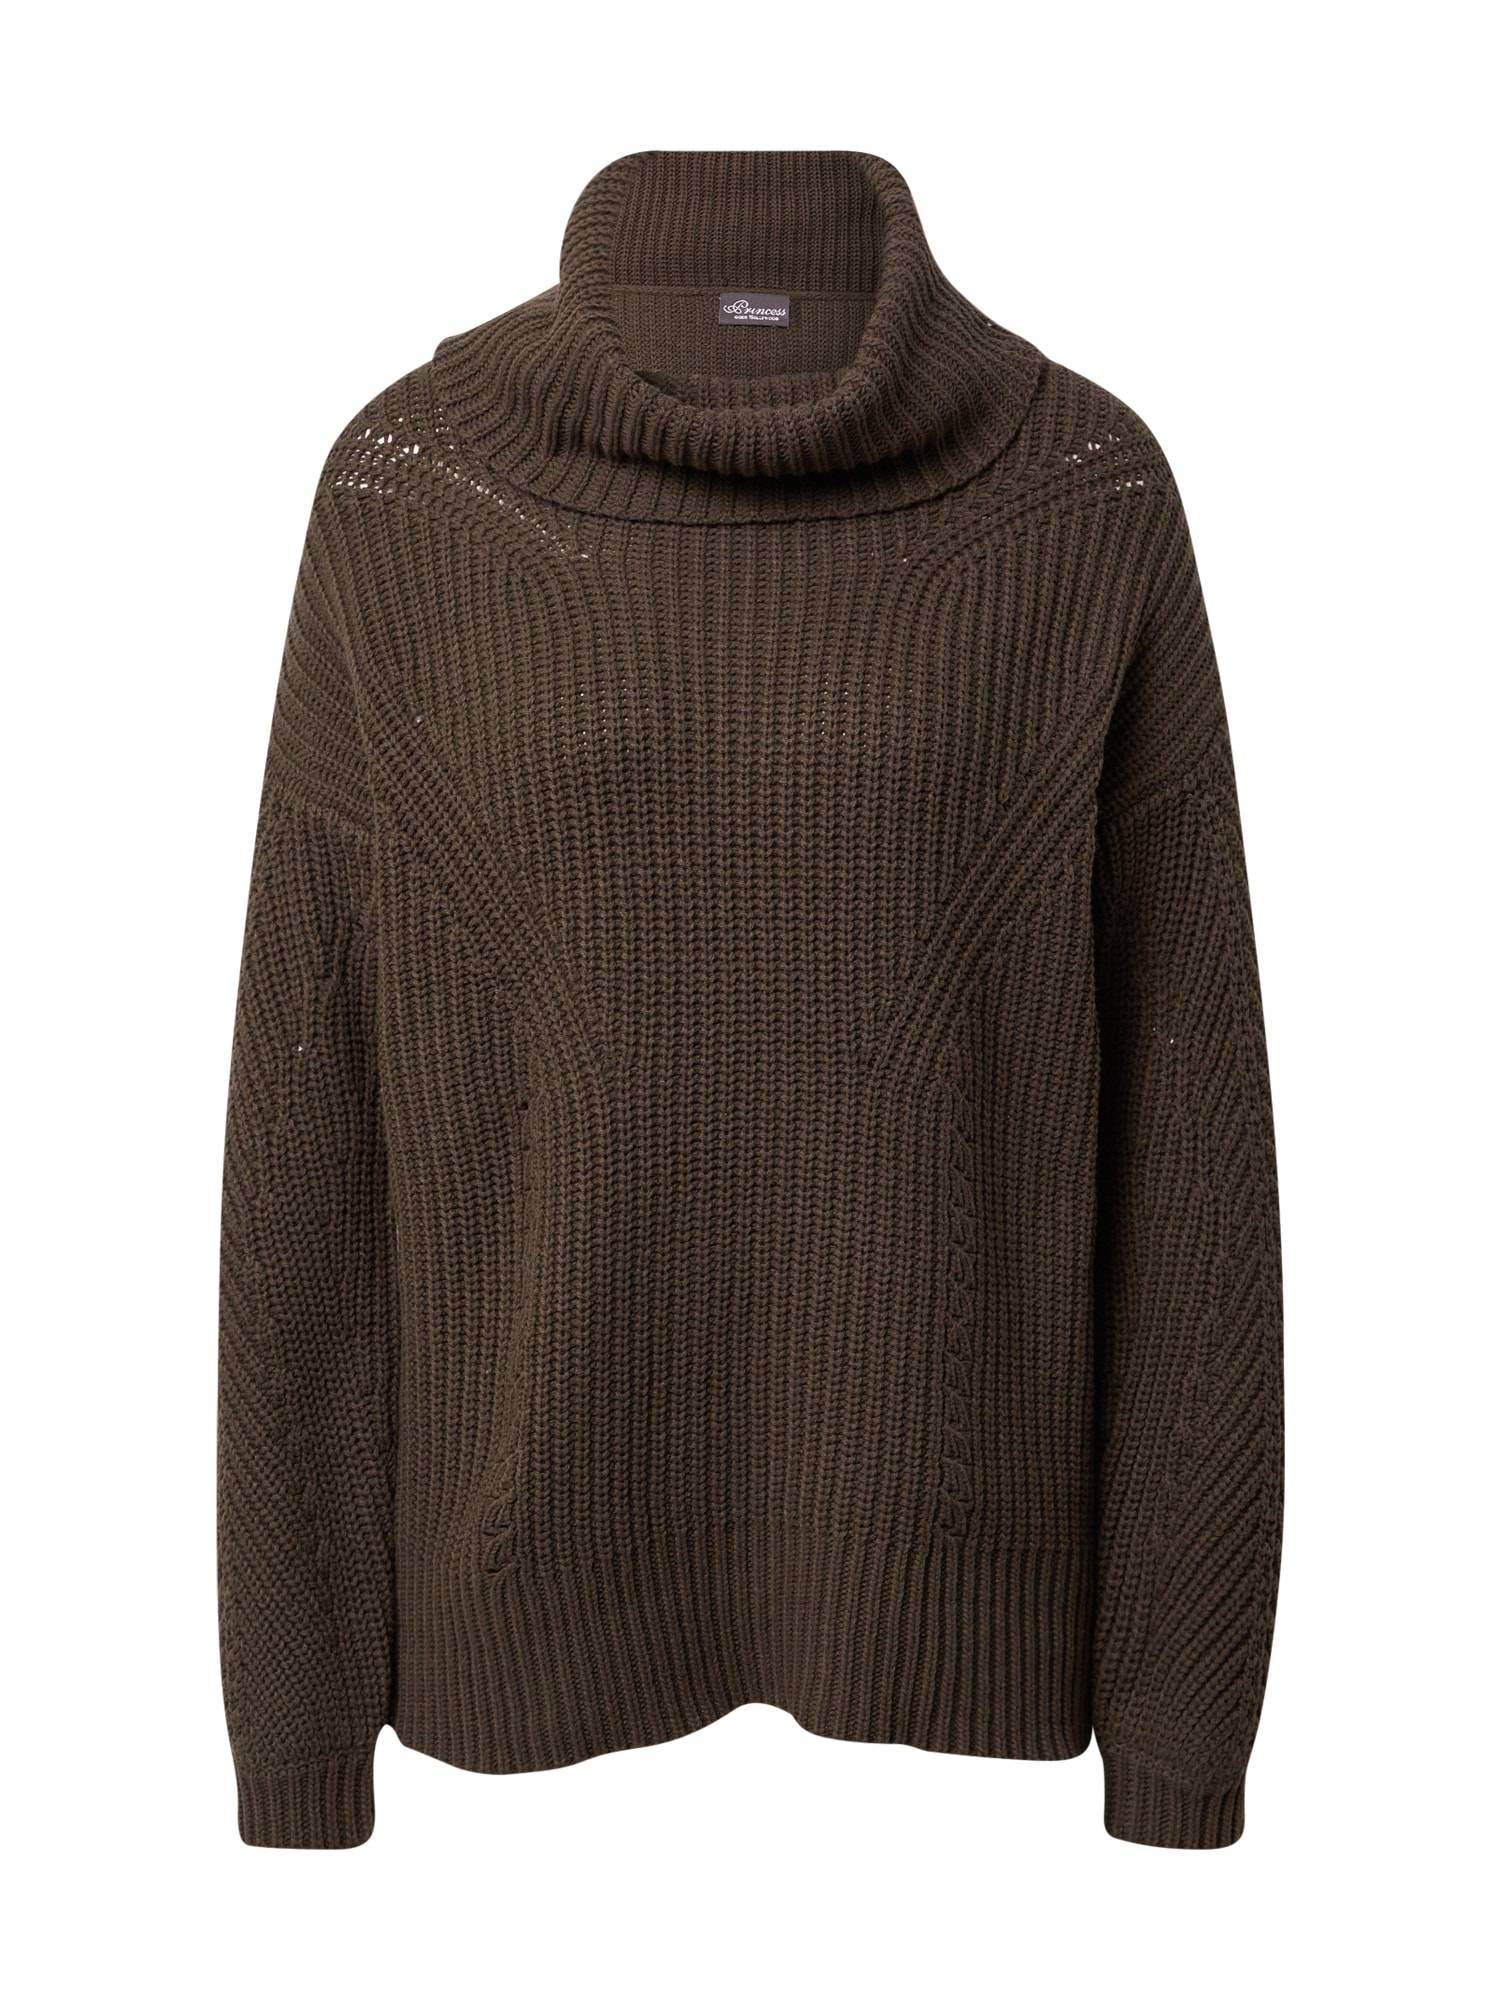 Princess Pull-over  - Marron - Taille: 44 - female